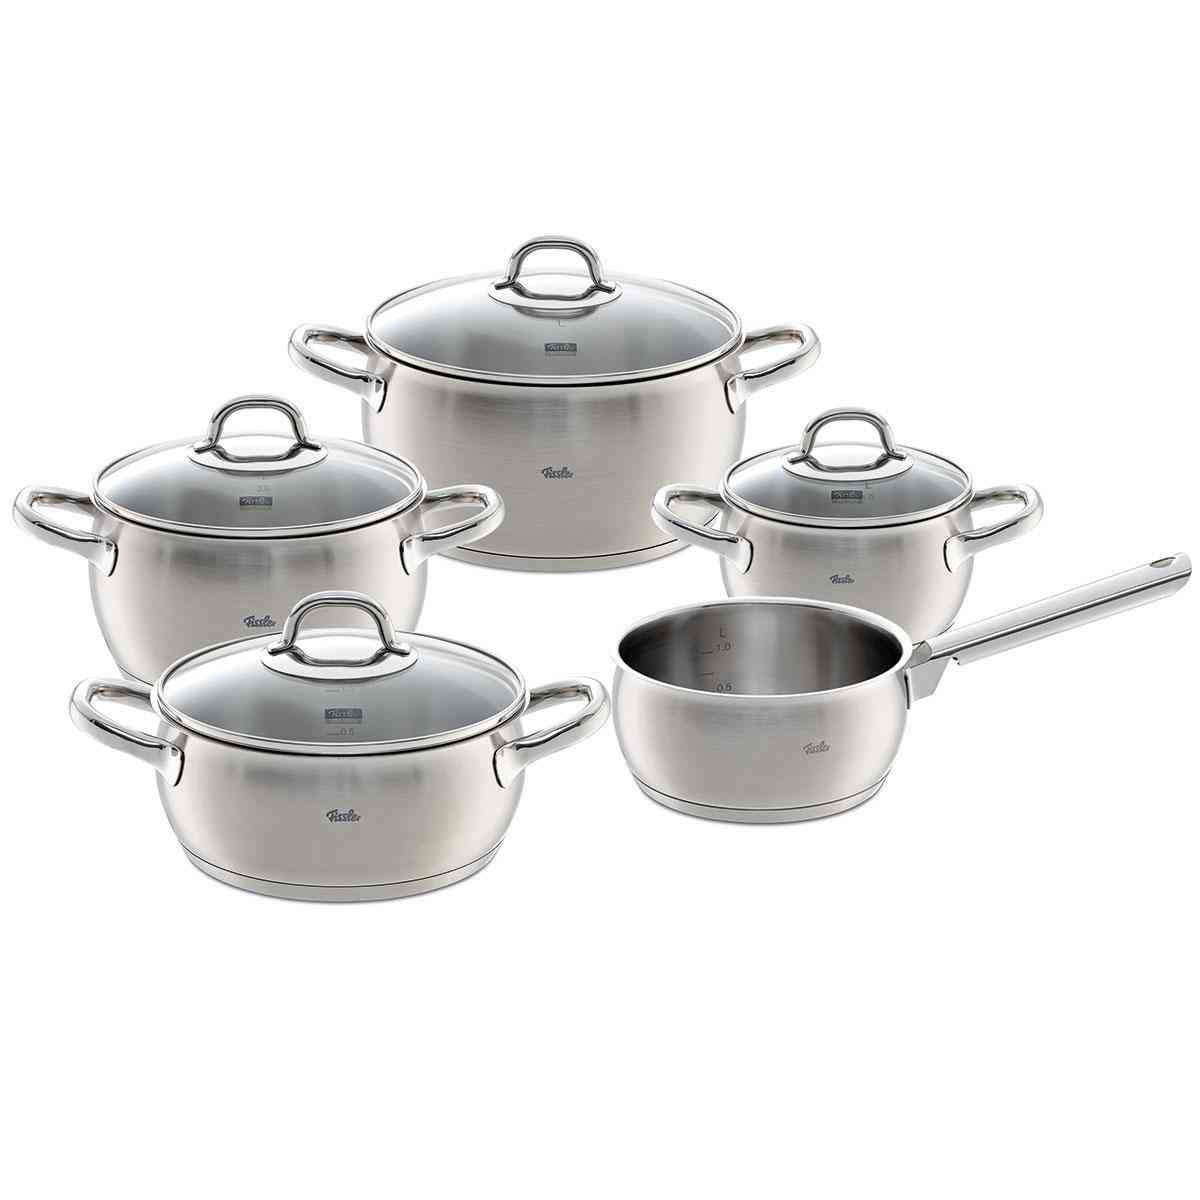 Valea Pot Set 5 Pieces Fissler Shop Fissler